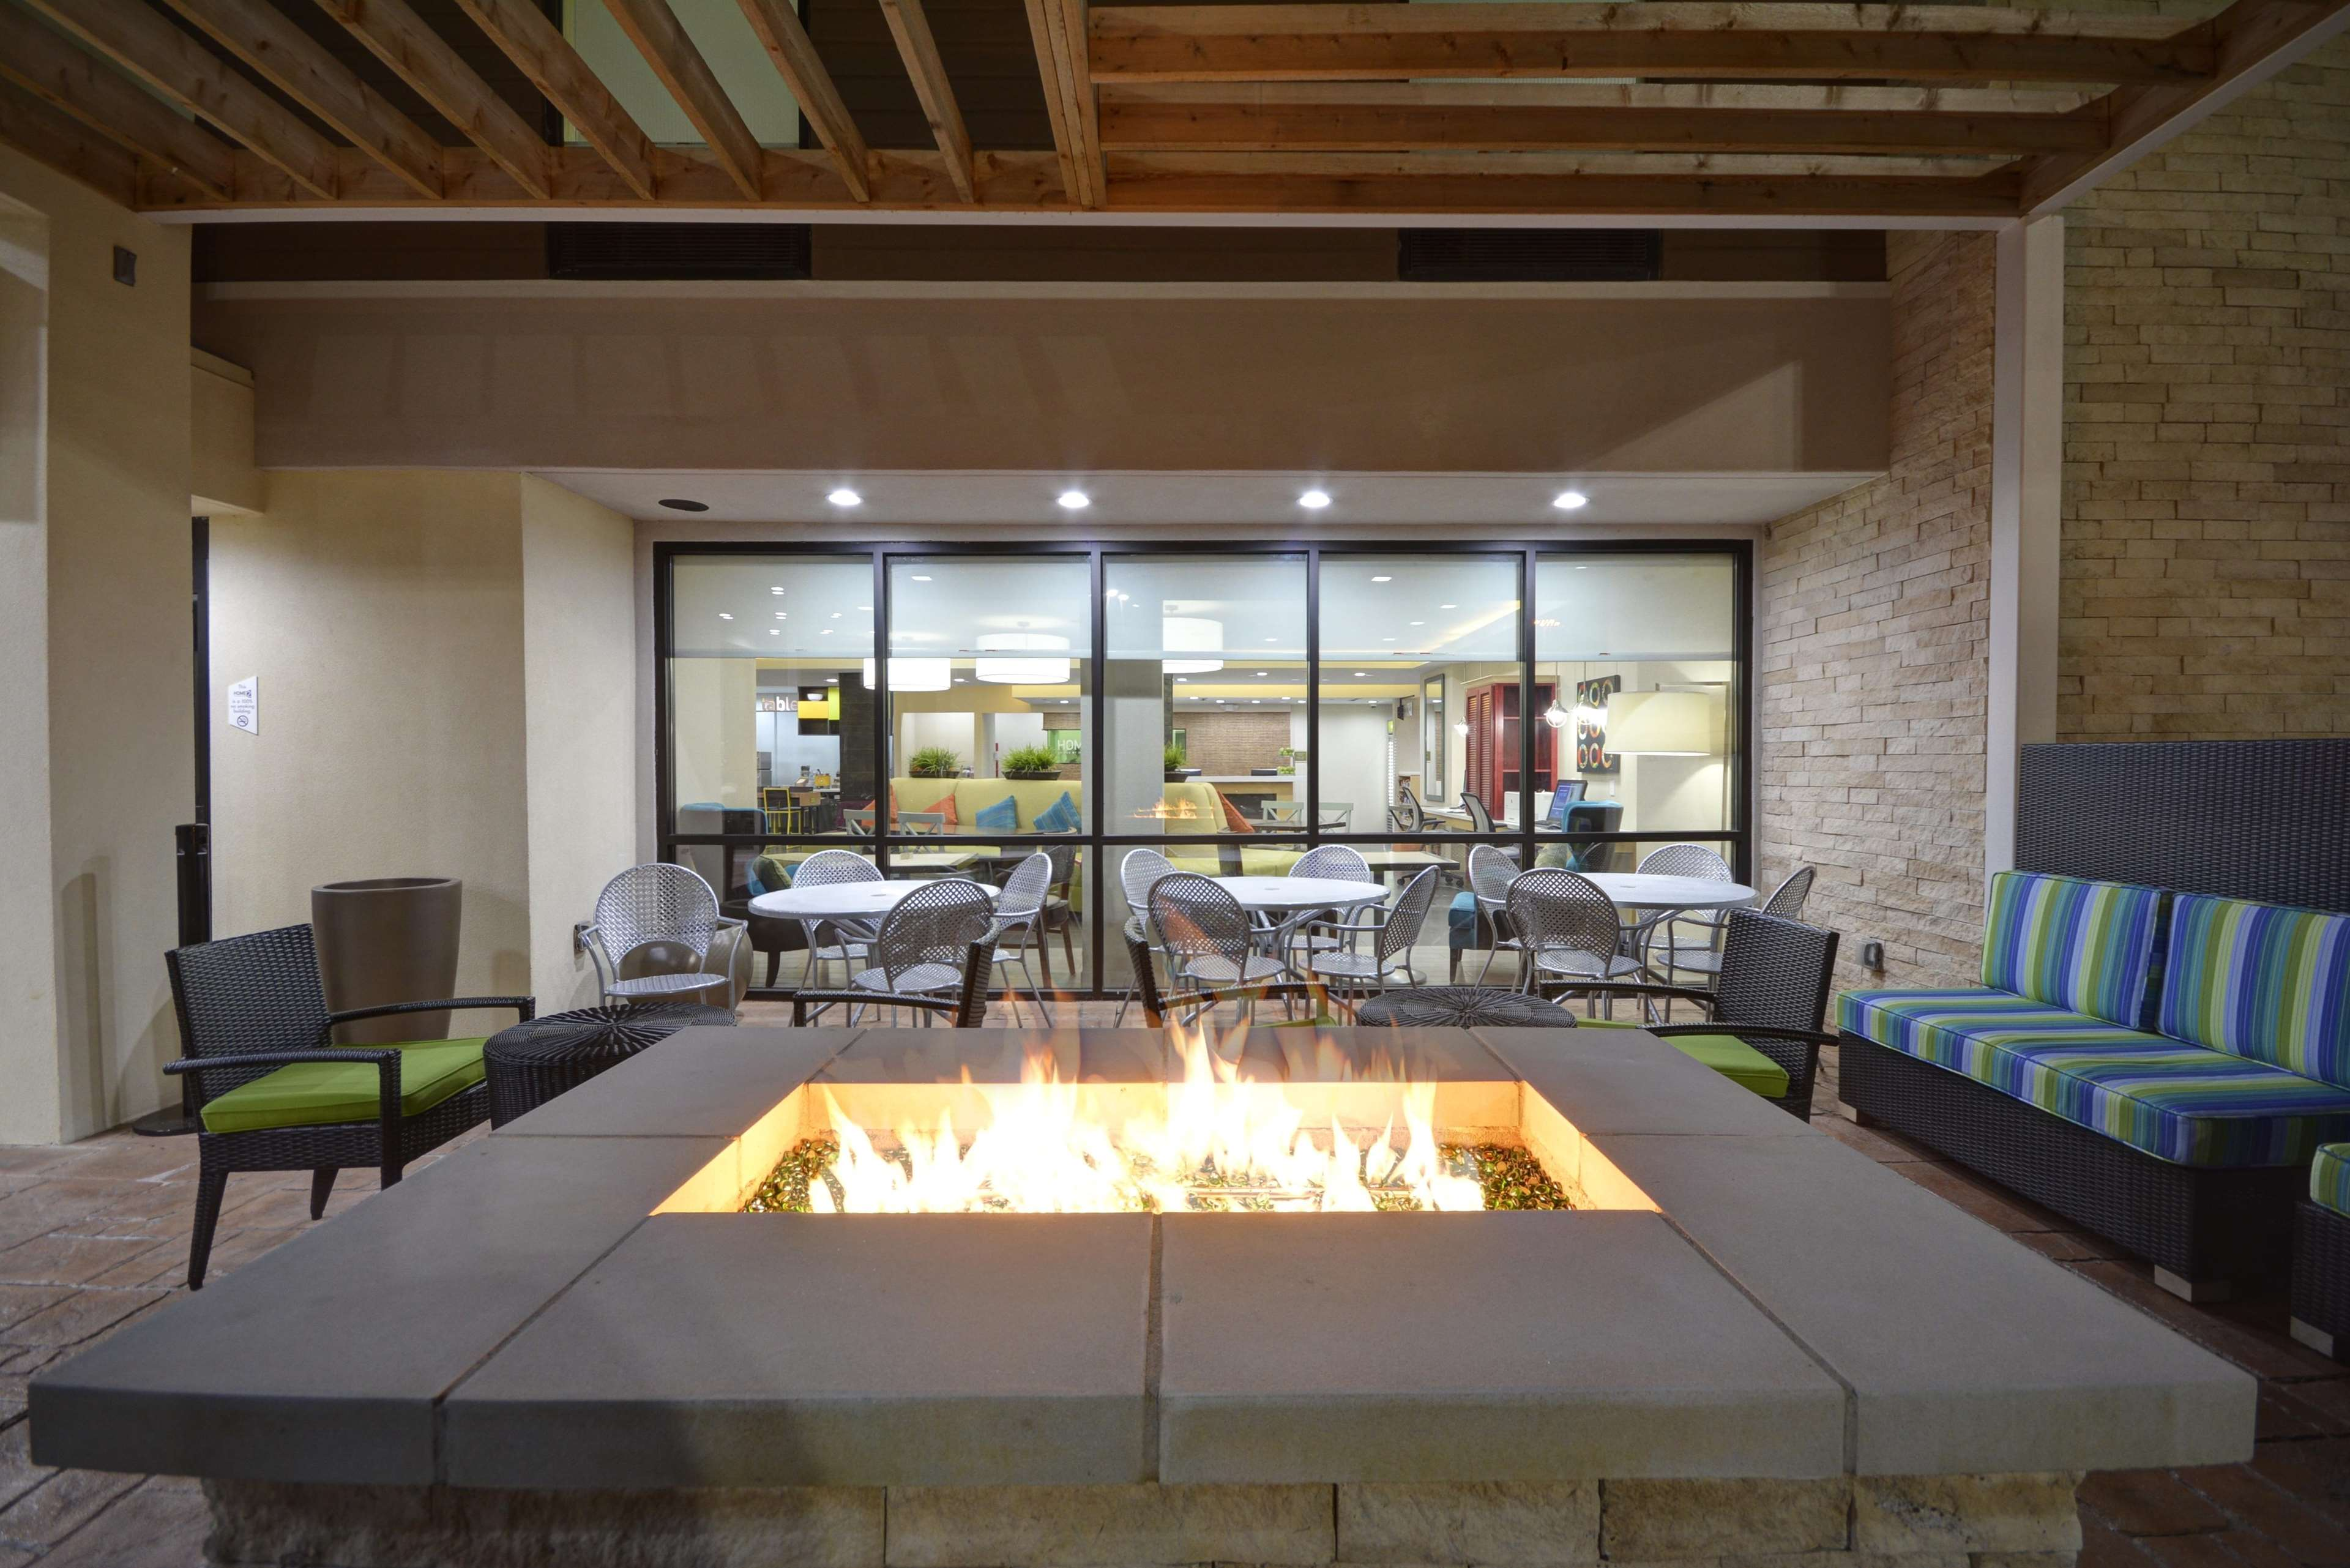 Home2 Suites by Hilton Fort Worth Southwest Cityview image 1